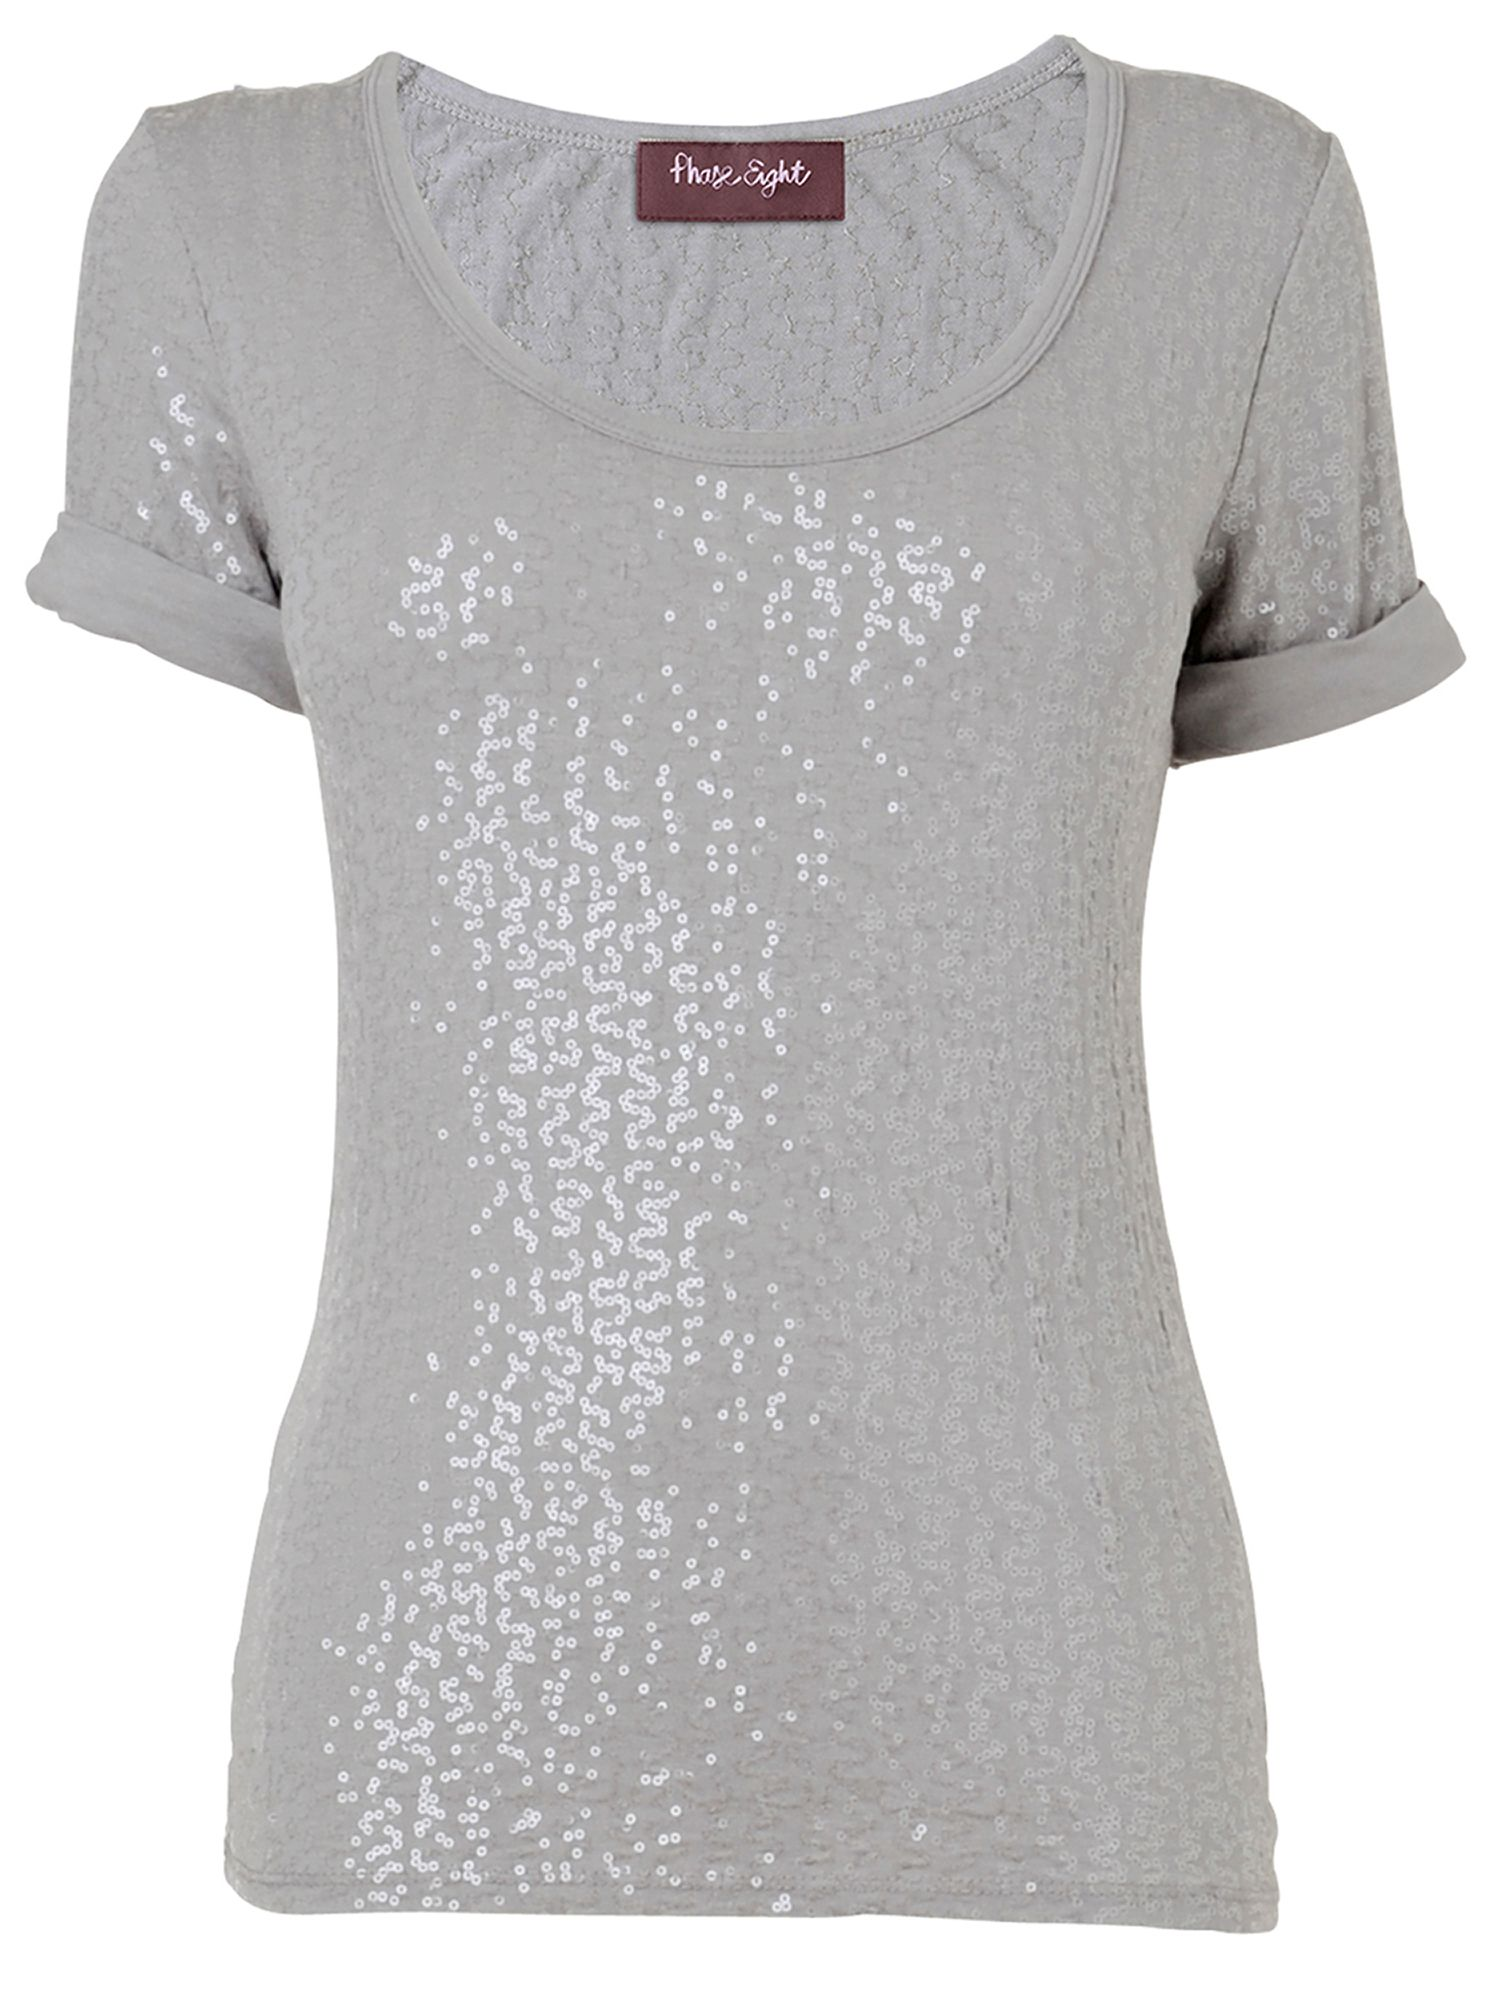 Phase Eight Sequin jersey t-shirt - Grey XS product image